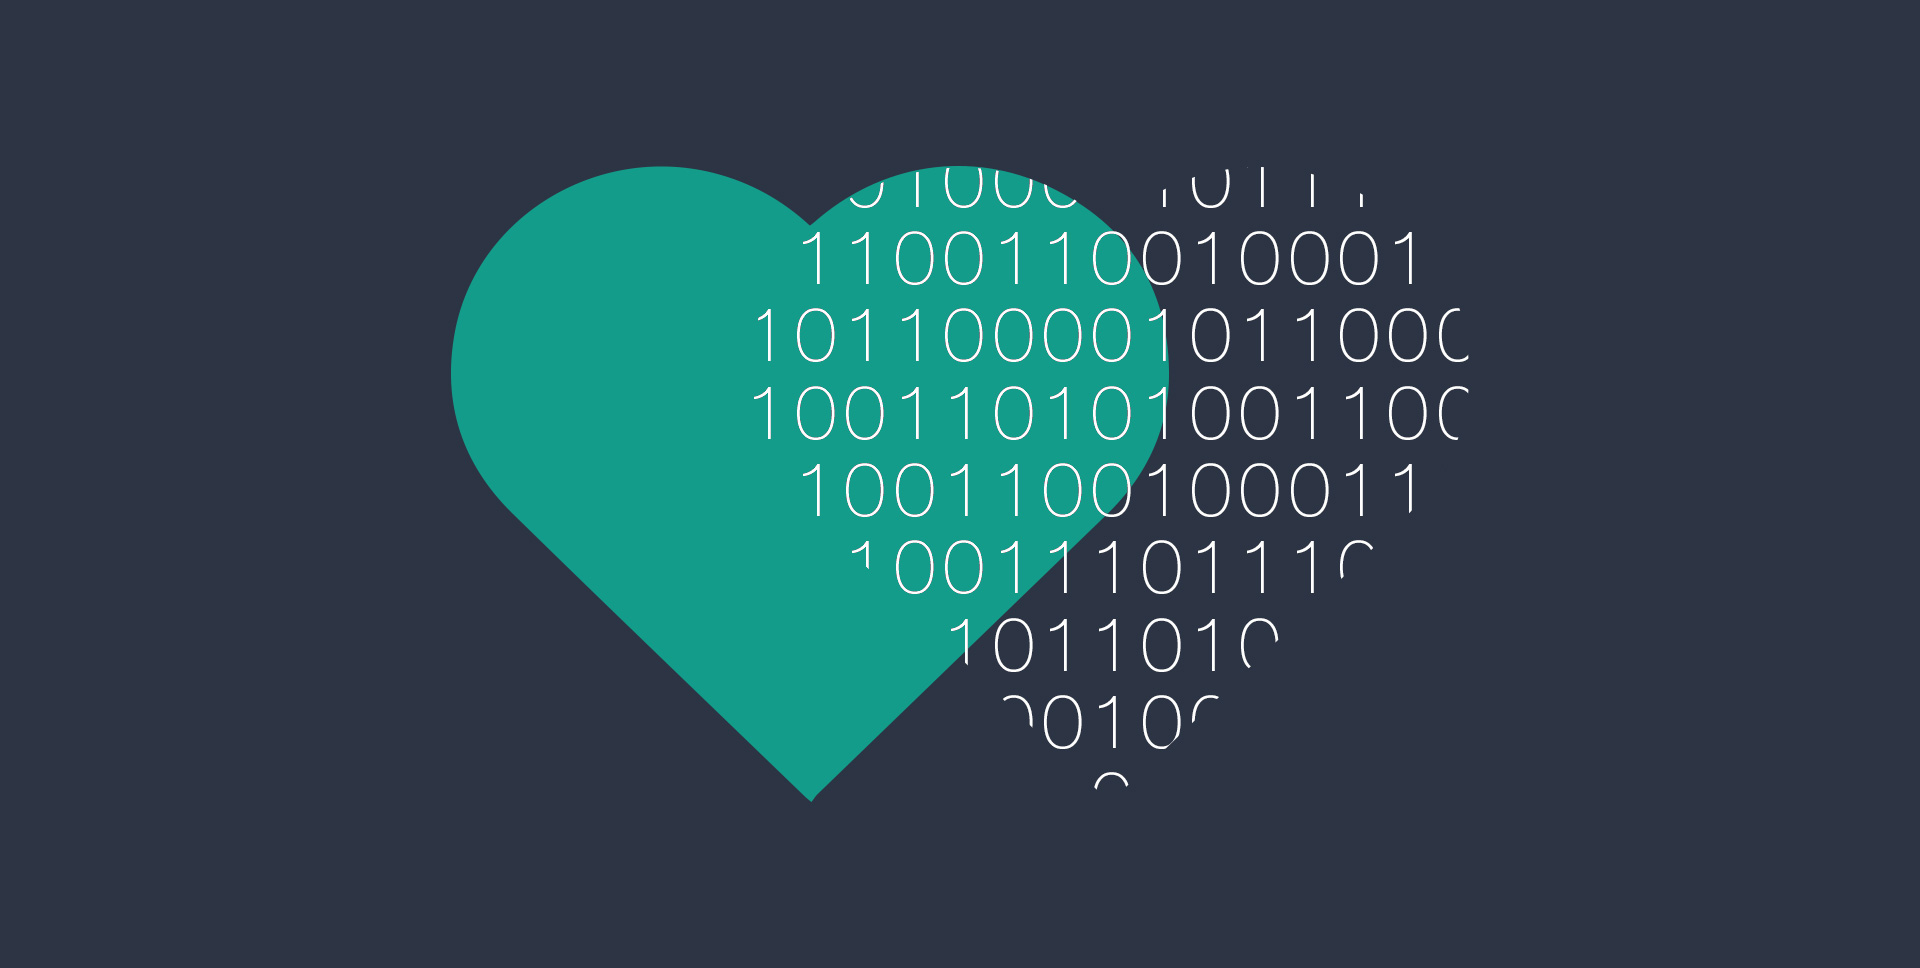 Illustration of two overlapping heart shapes; one green colored, the other made of binary code.